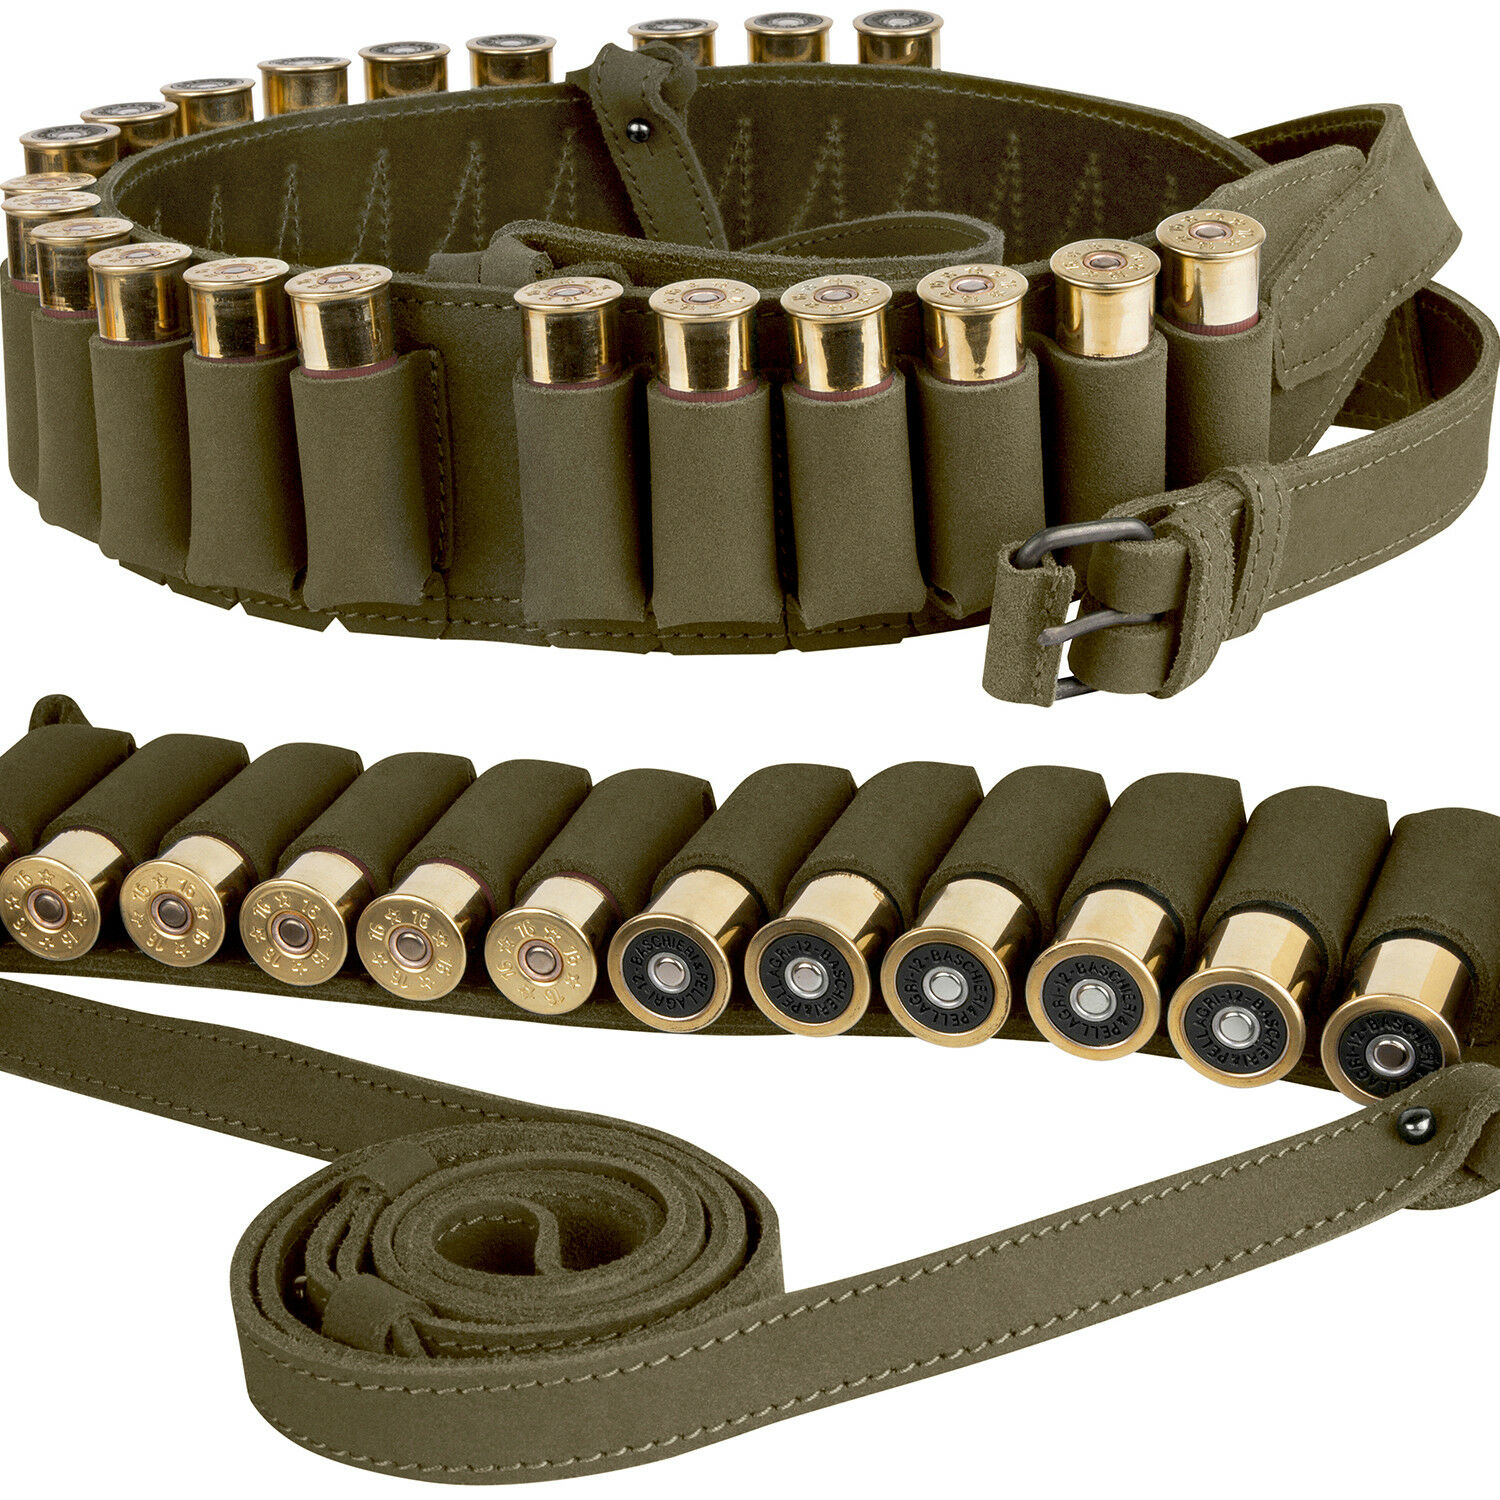 Leder Shotgun Shell Cartridge Cartridge Shell Belt Holder Case Hunting Bandolier 12 Ga d62355